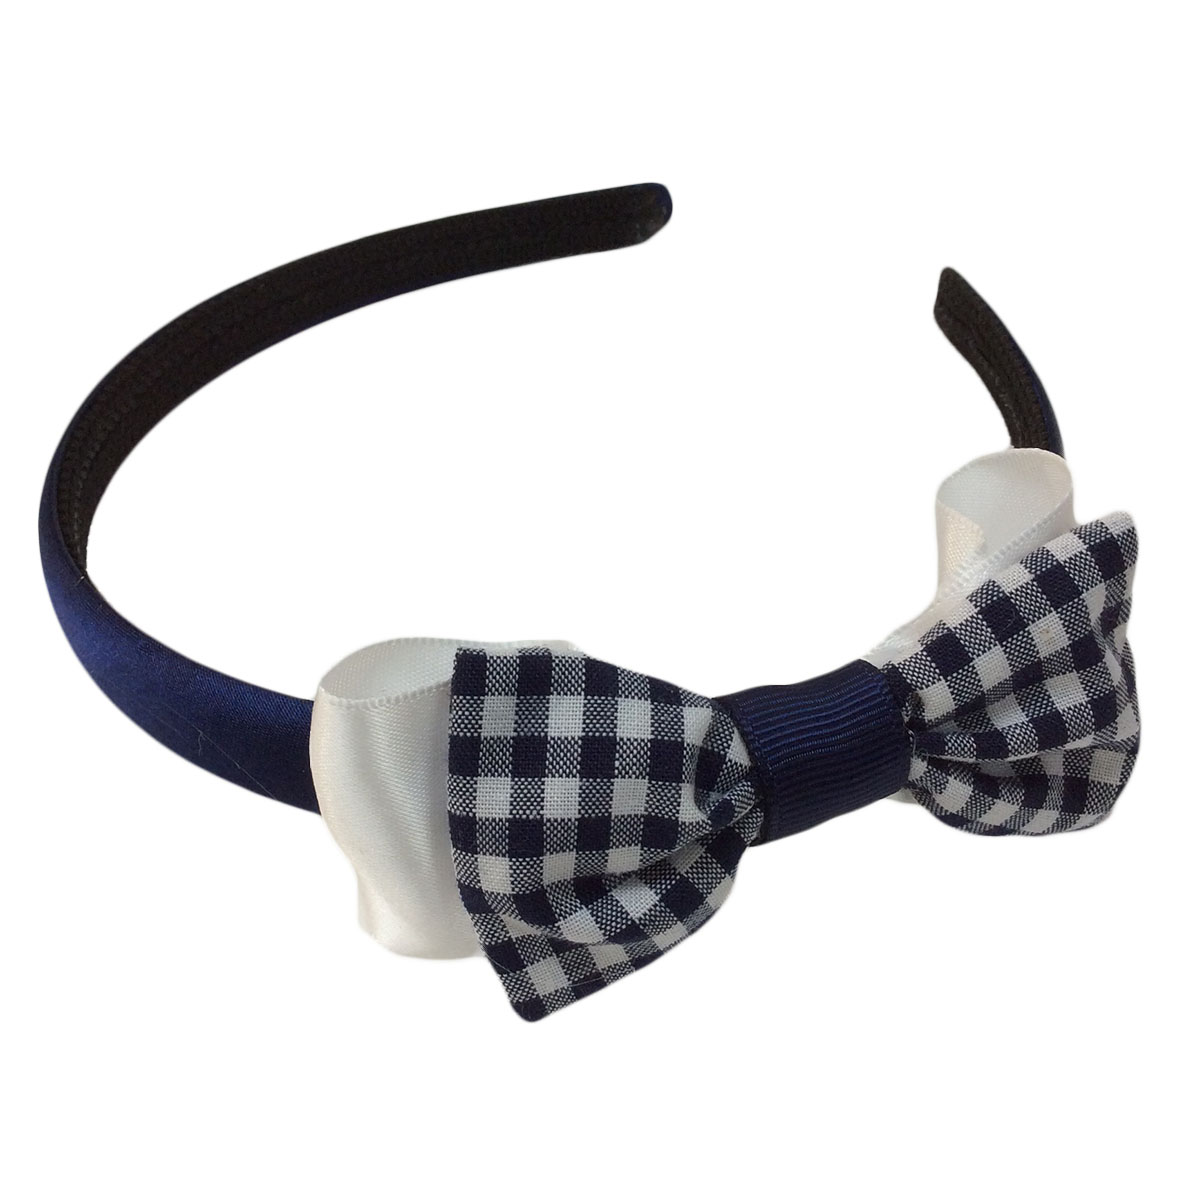 School dress fabric double bow headband